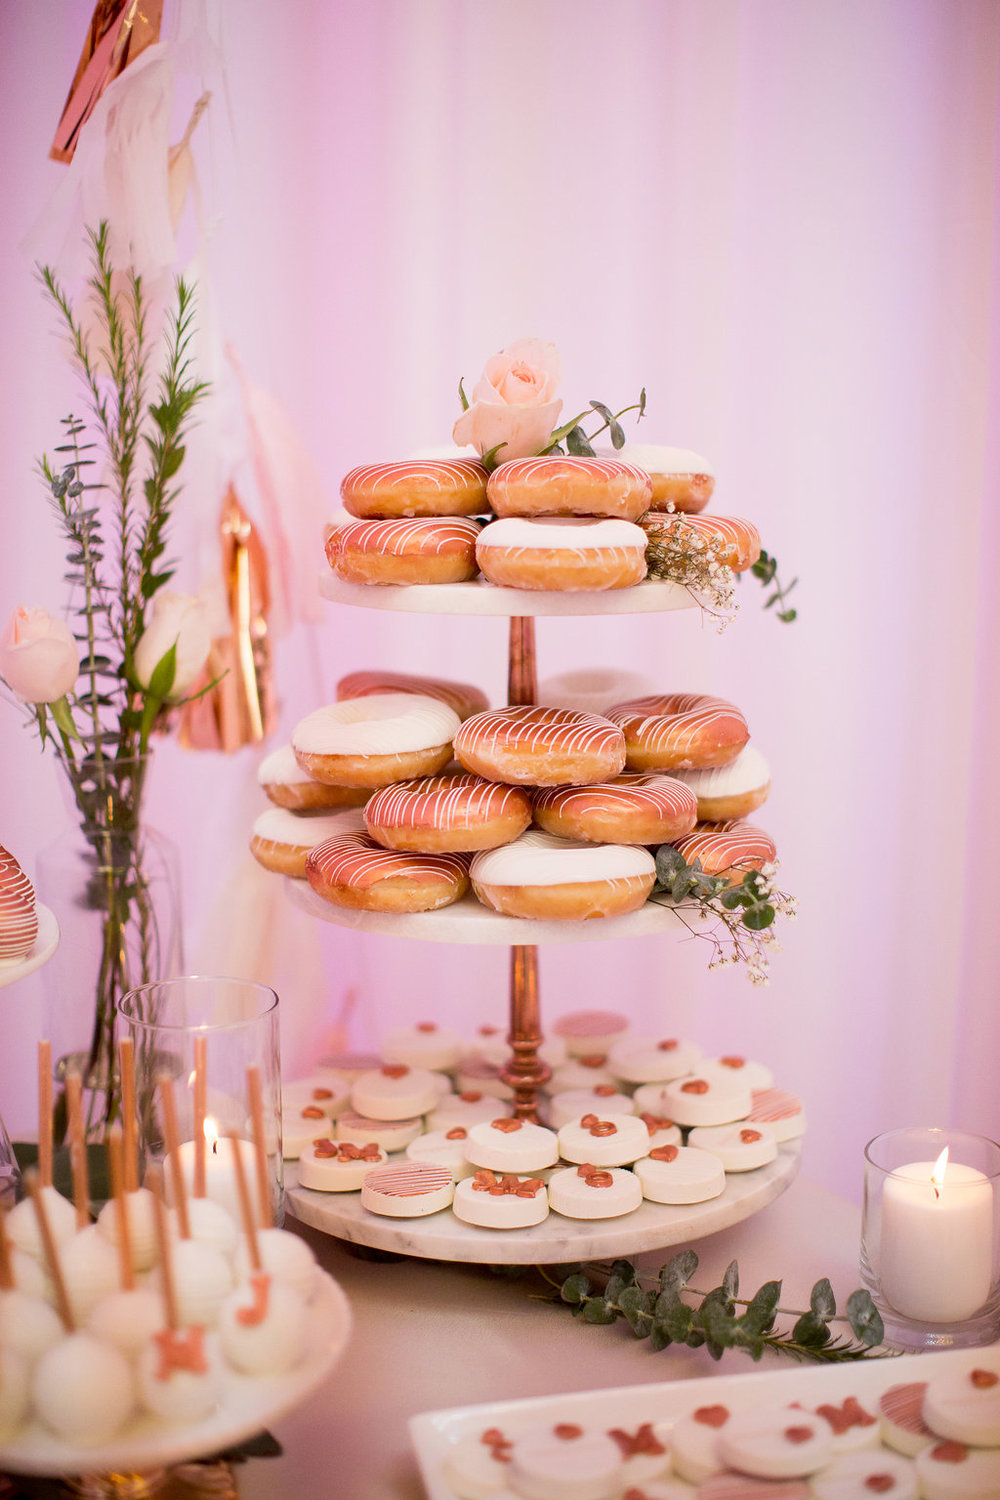 Rose Gold Dessert Table-Rose Gold wedding-rose quartz-Wedding Desserts-Engagement party-Copper Desserts-Decorated wedding donuts-www.SugarPartiesLA.com